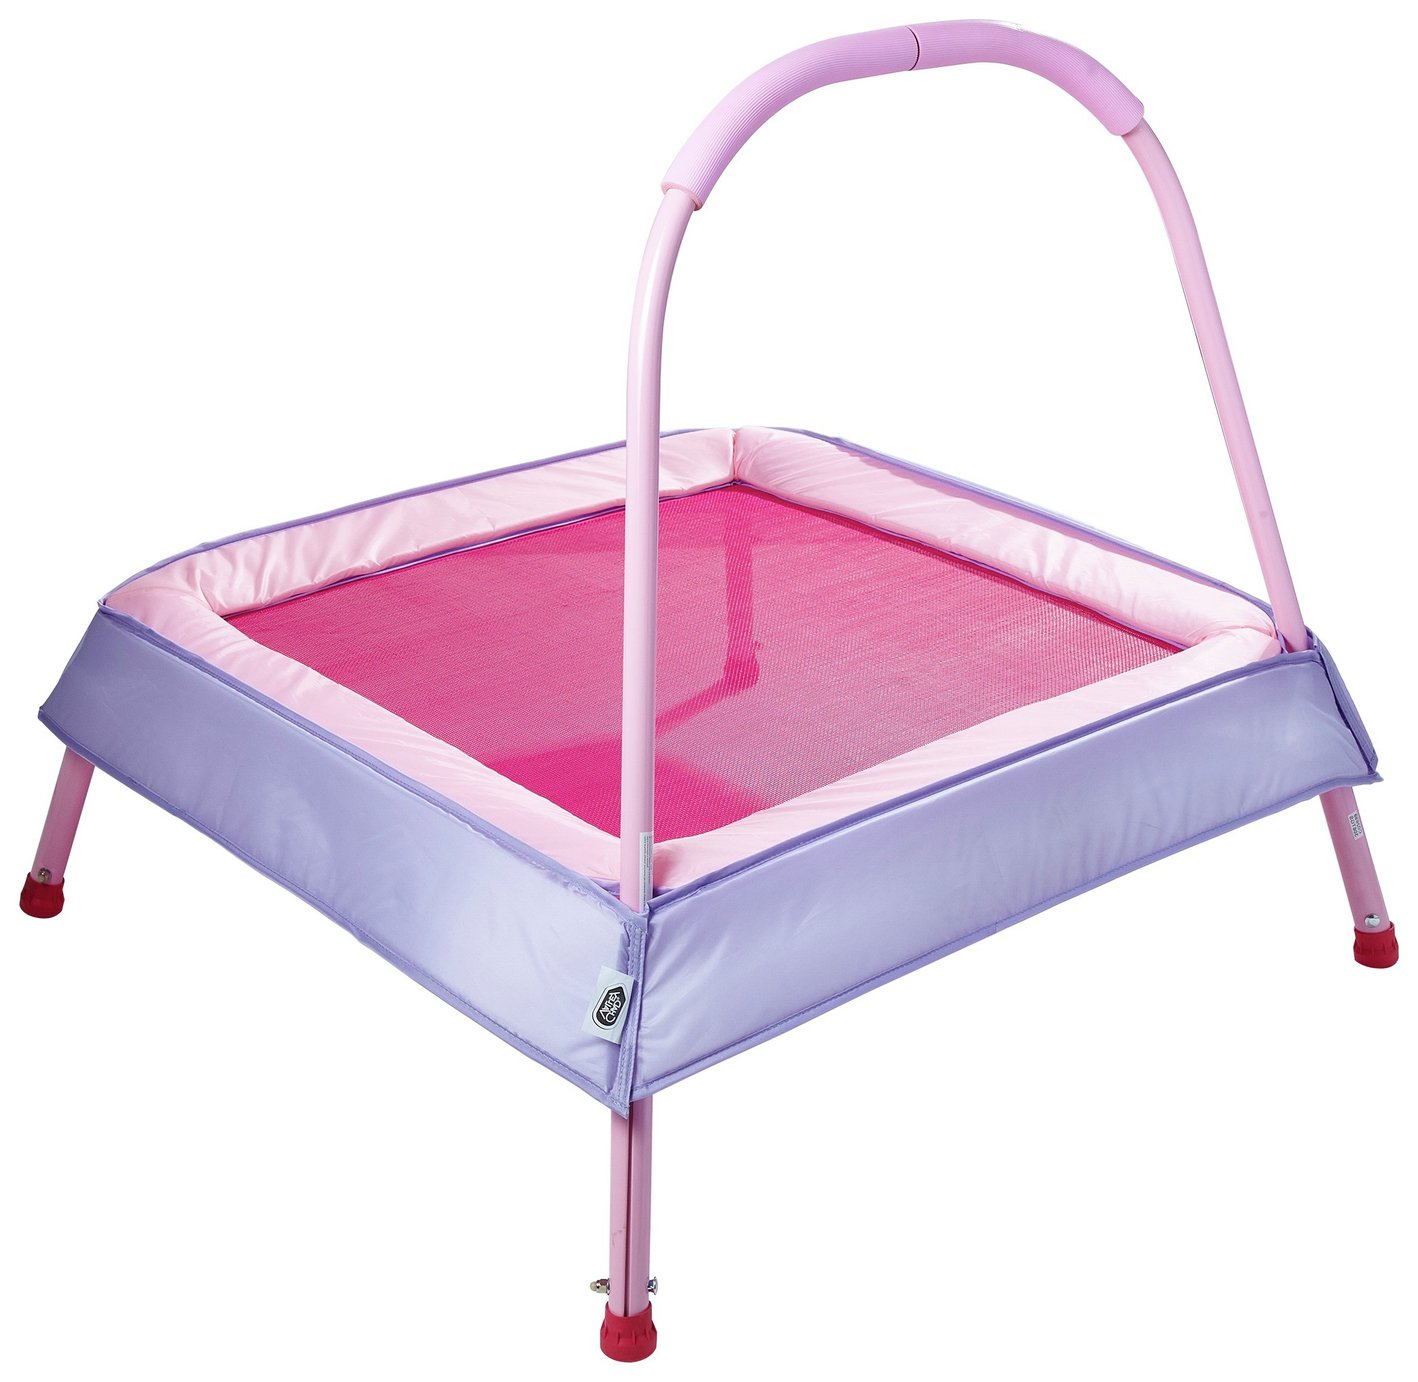 Chad Valley Kid's 2ft Indoor Trampoline - Pink